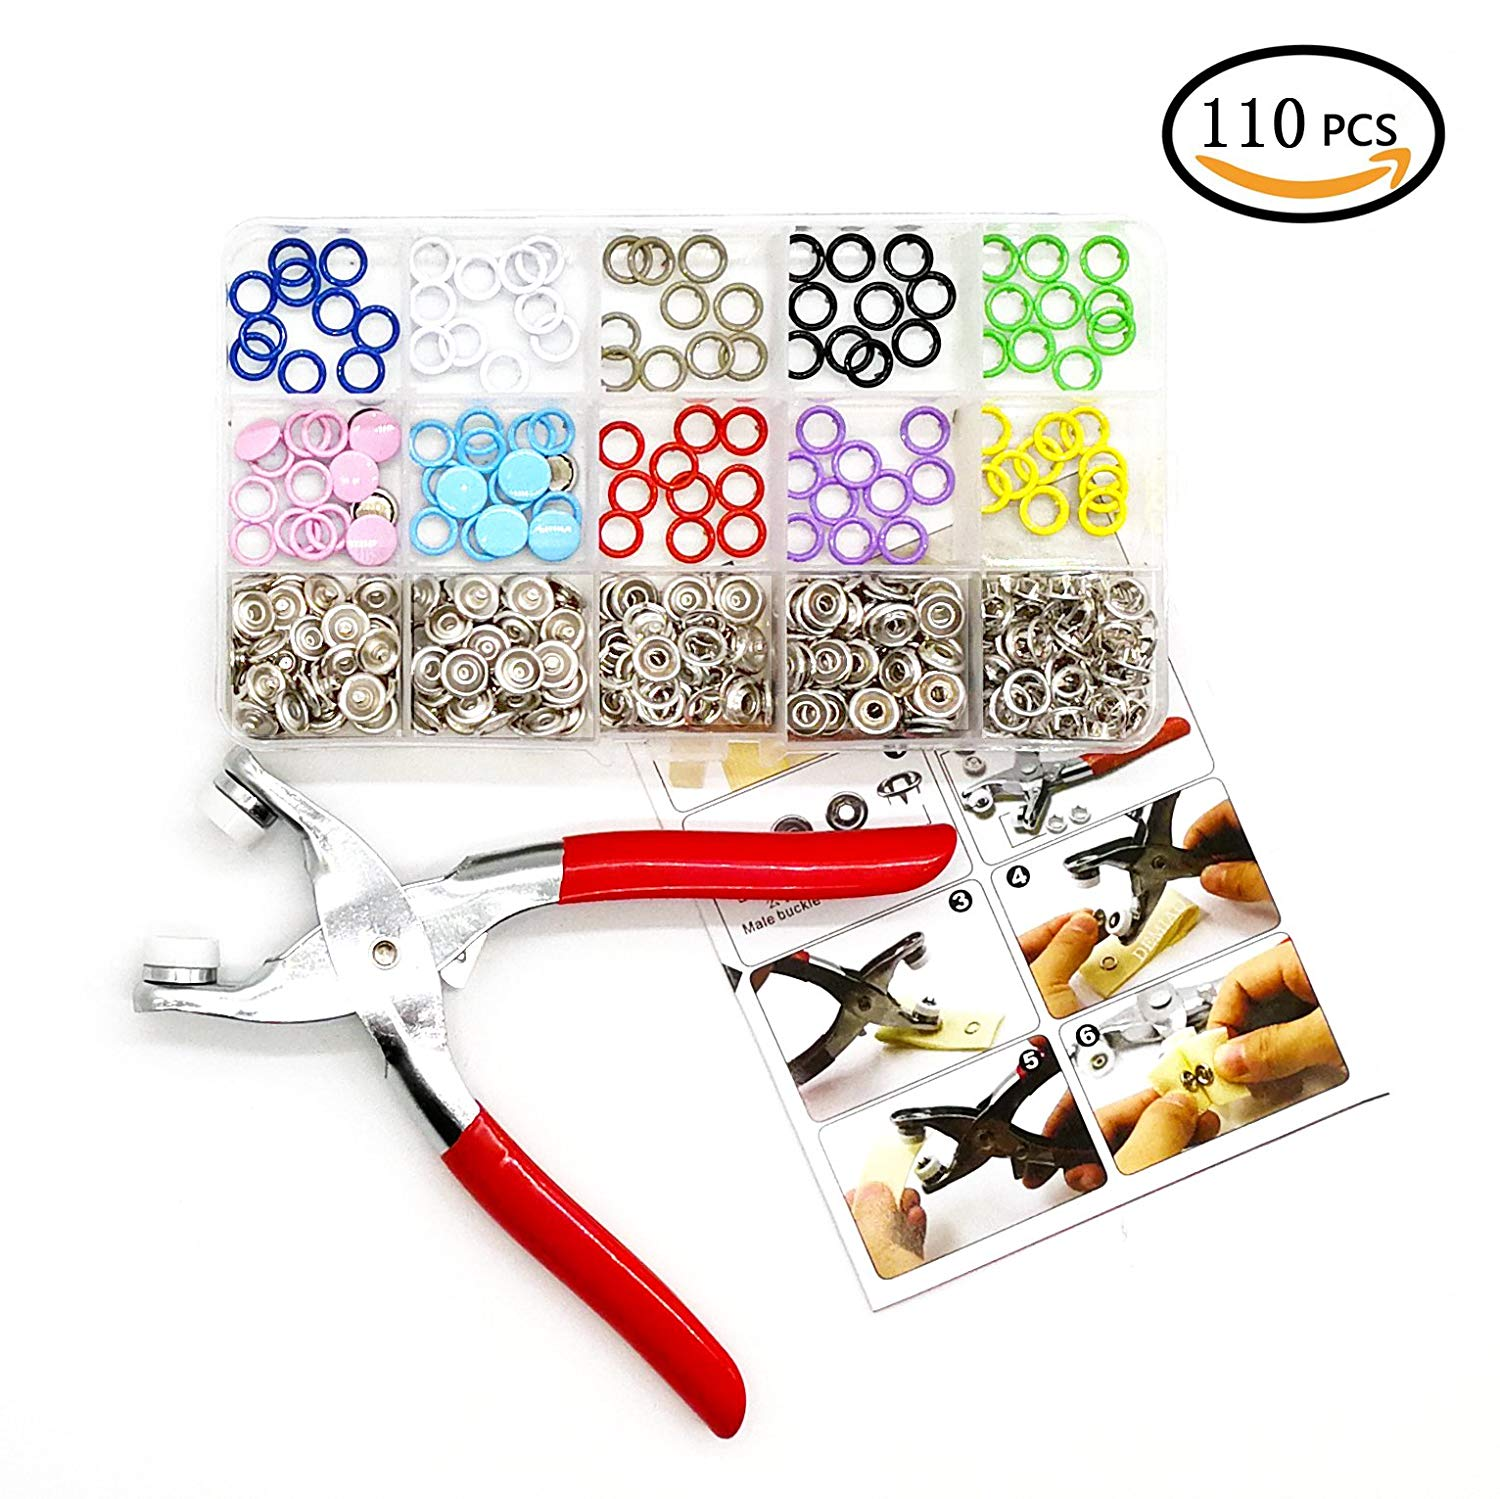 Zivisk Snap Button with Fastener Snap Pliers, 110 Sets Hand Pliers Setting Tool, Metal Ring Button Sewing Craft Snap Setter Craft Tool 9.5mm